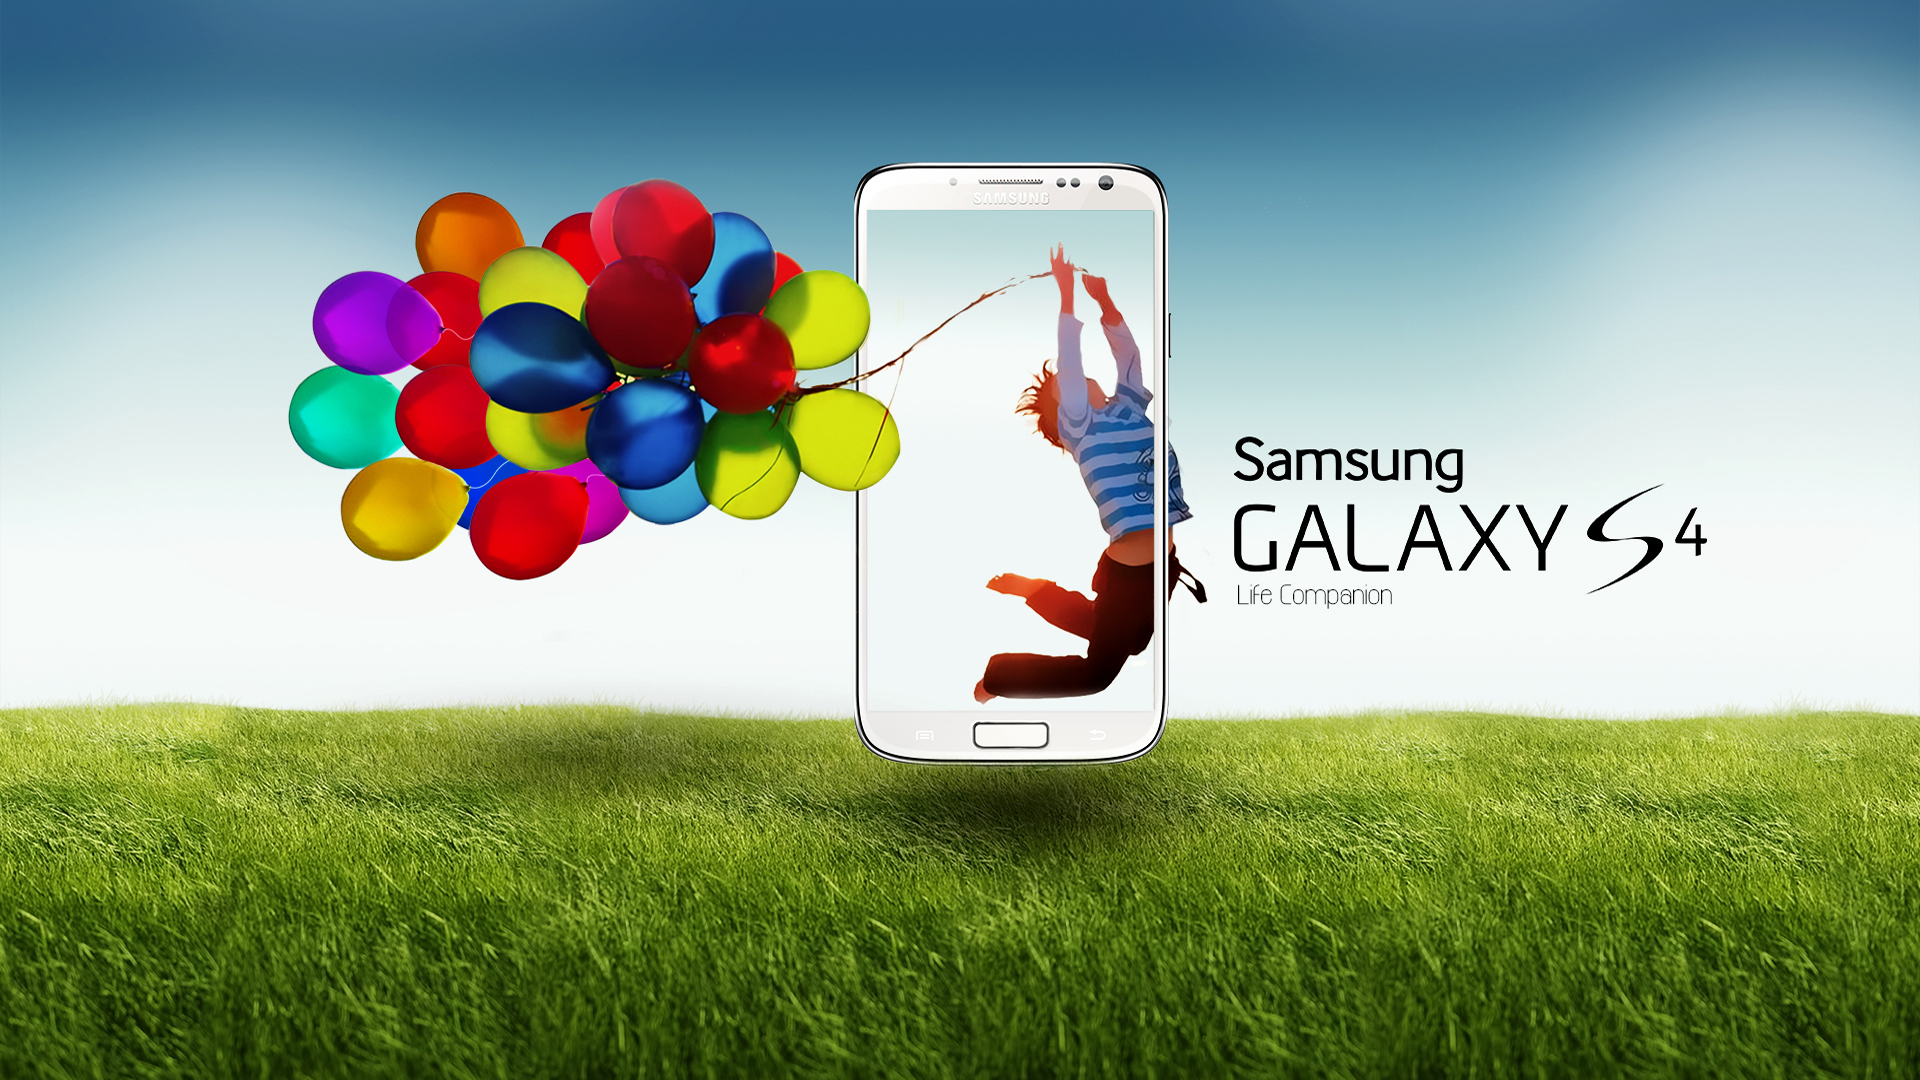 Samsung Galaxy S4 Wallpapers & Pictures